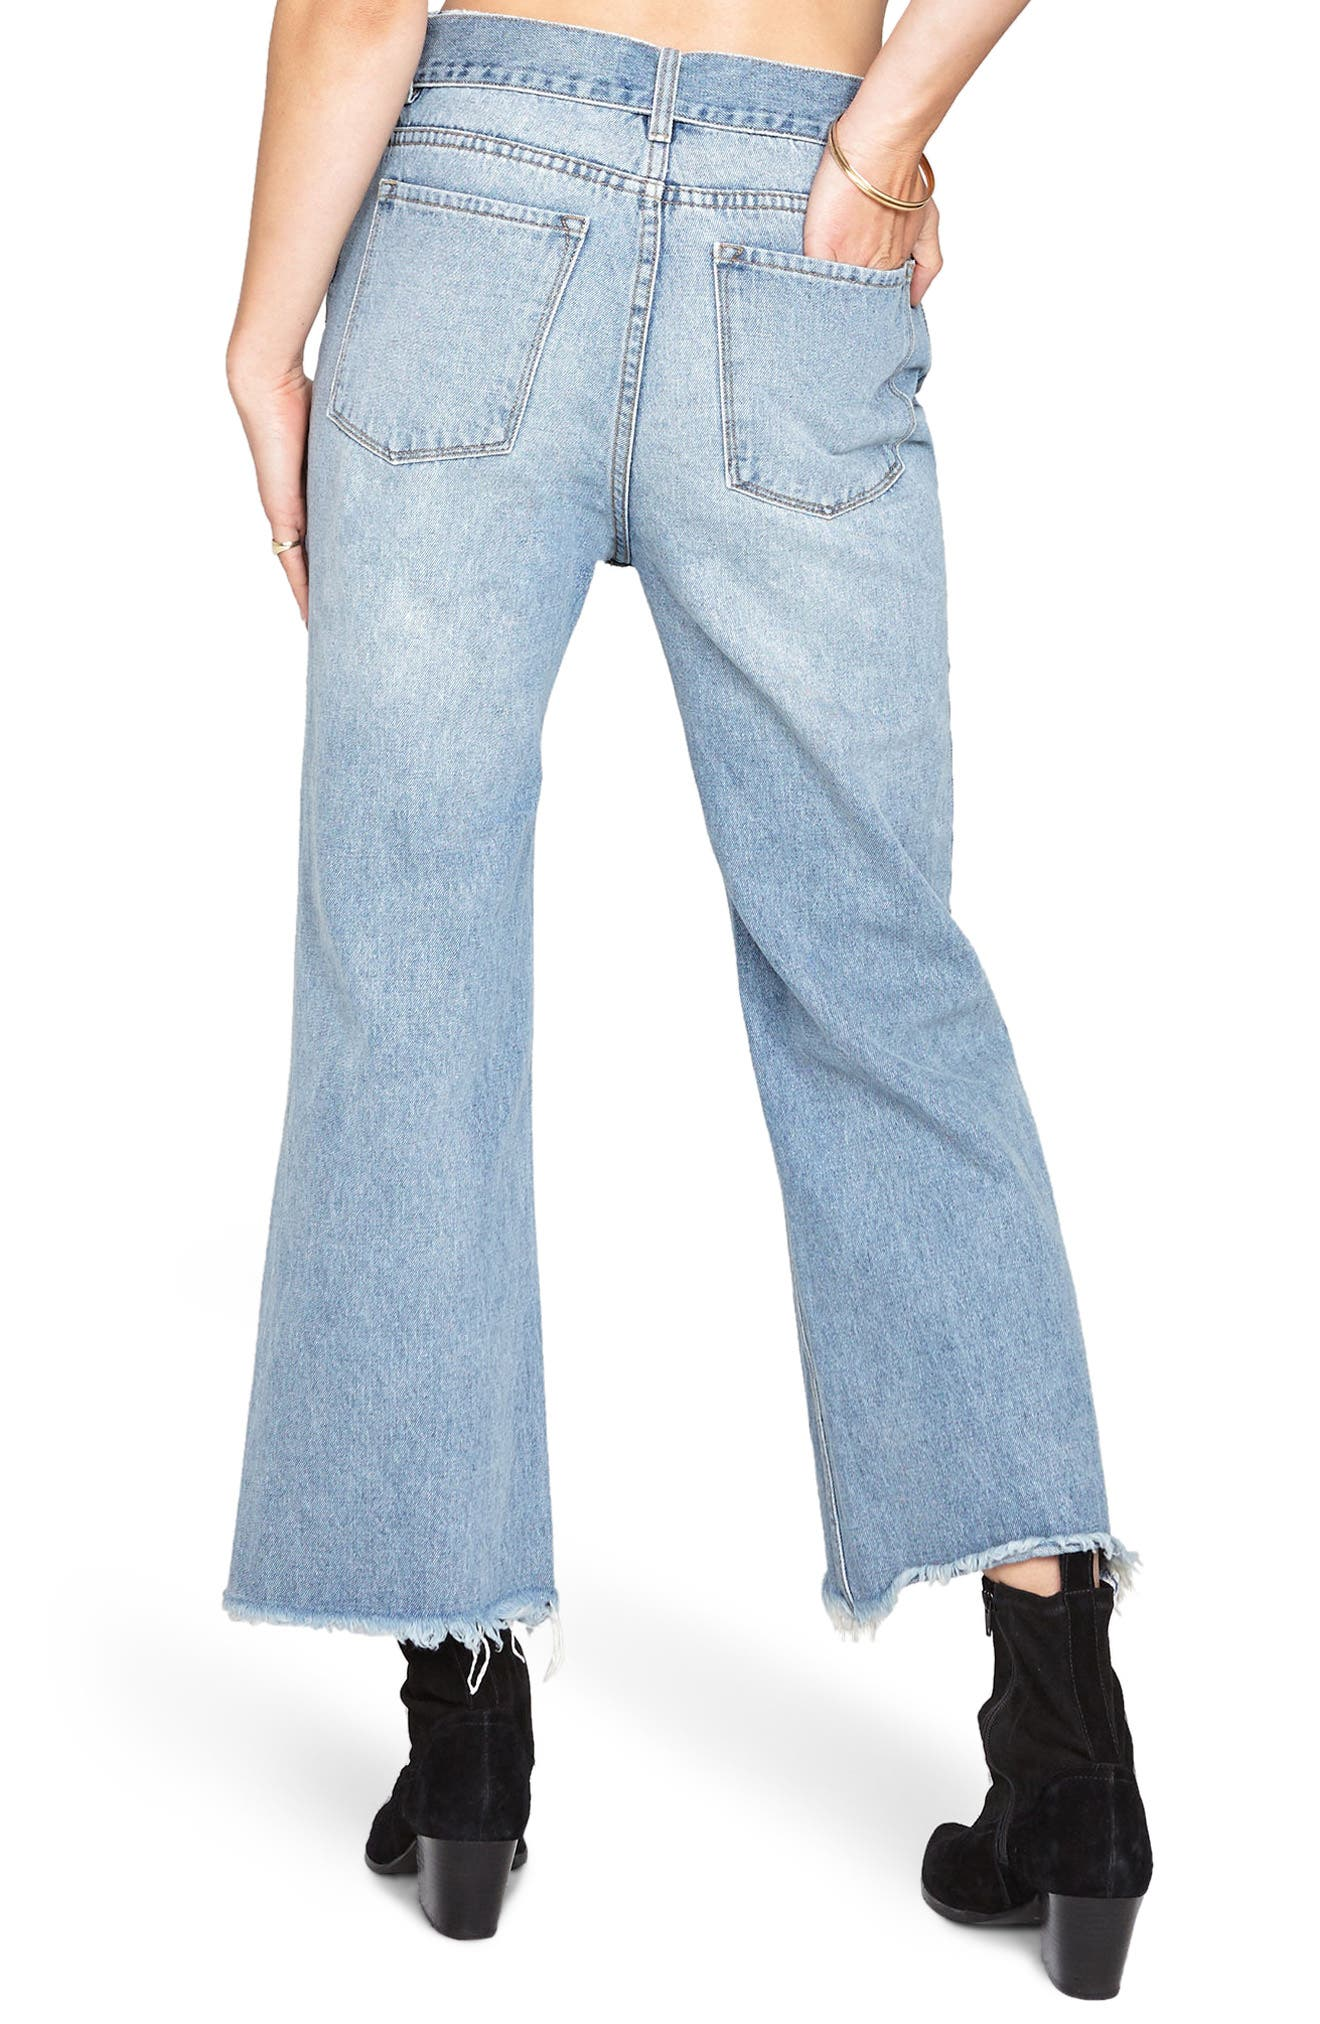 All Tied Up Crop Flare Jeans,                             Alternate thumbnail 2, color,                             Faded Vintage Wash